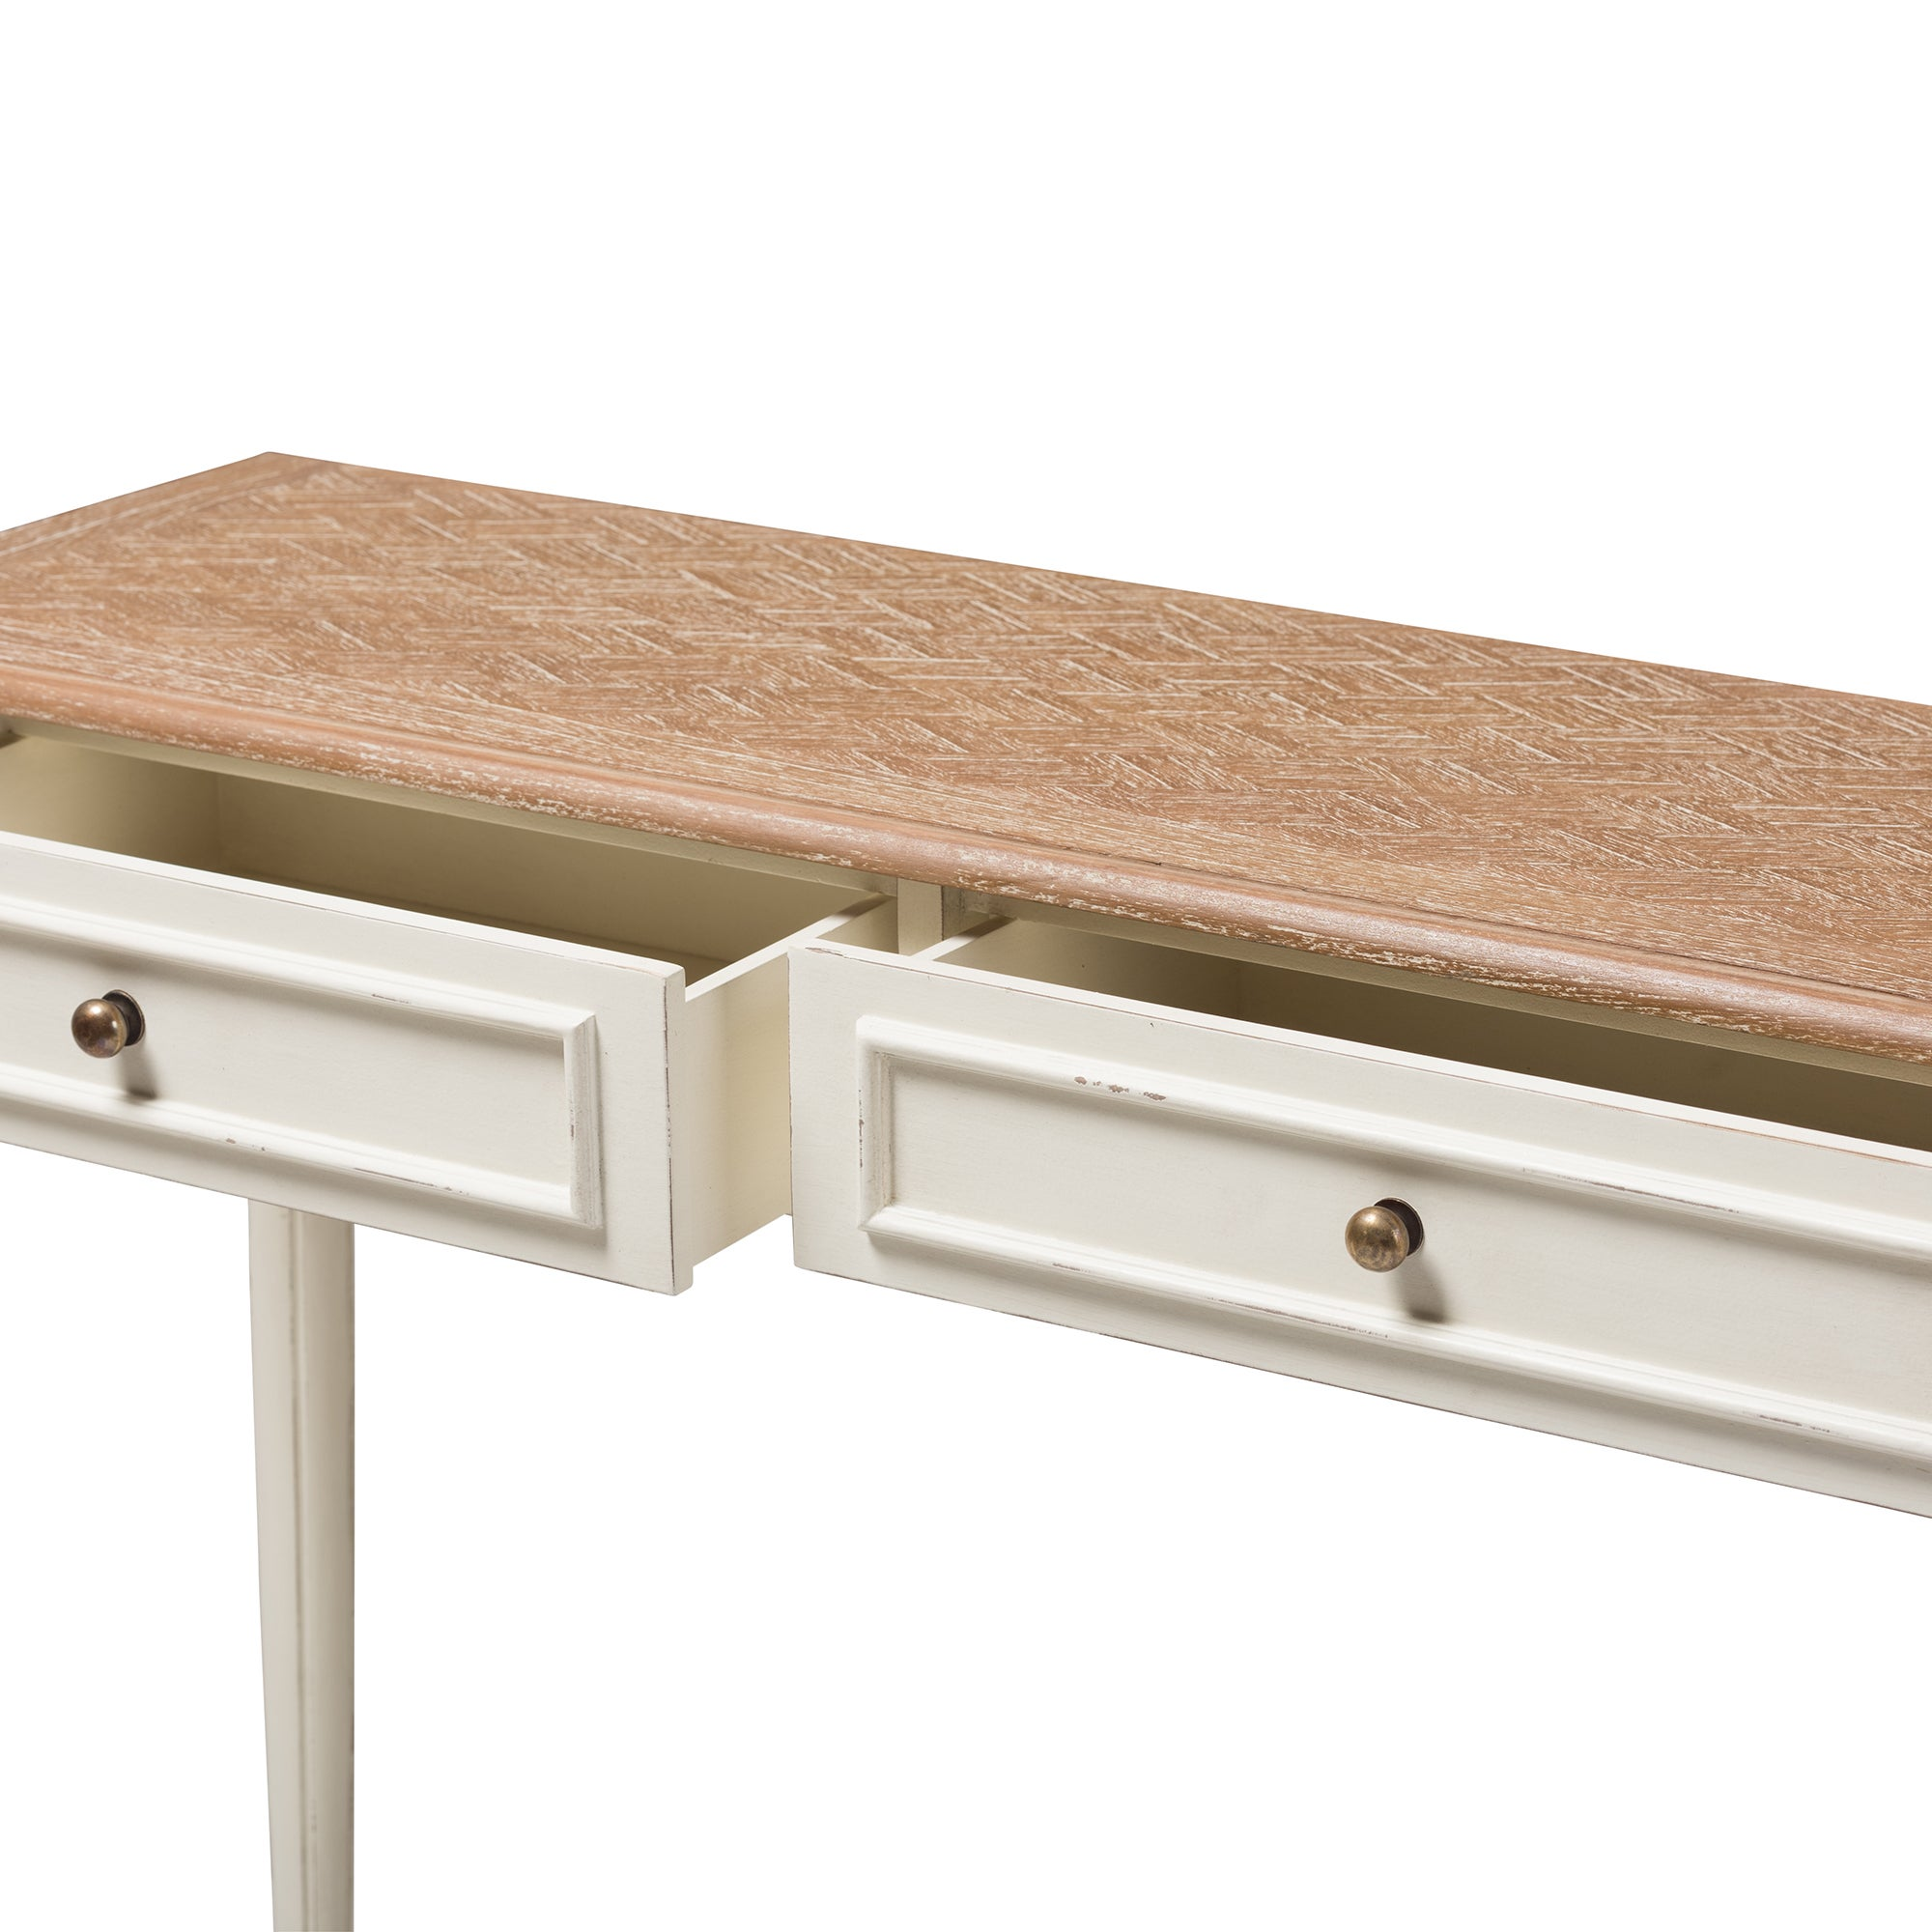 Baxton Studio French Provincial Weathered Oak and Whitewash